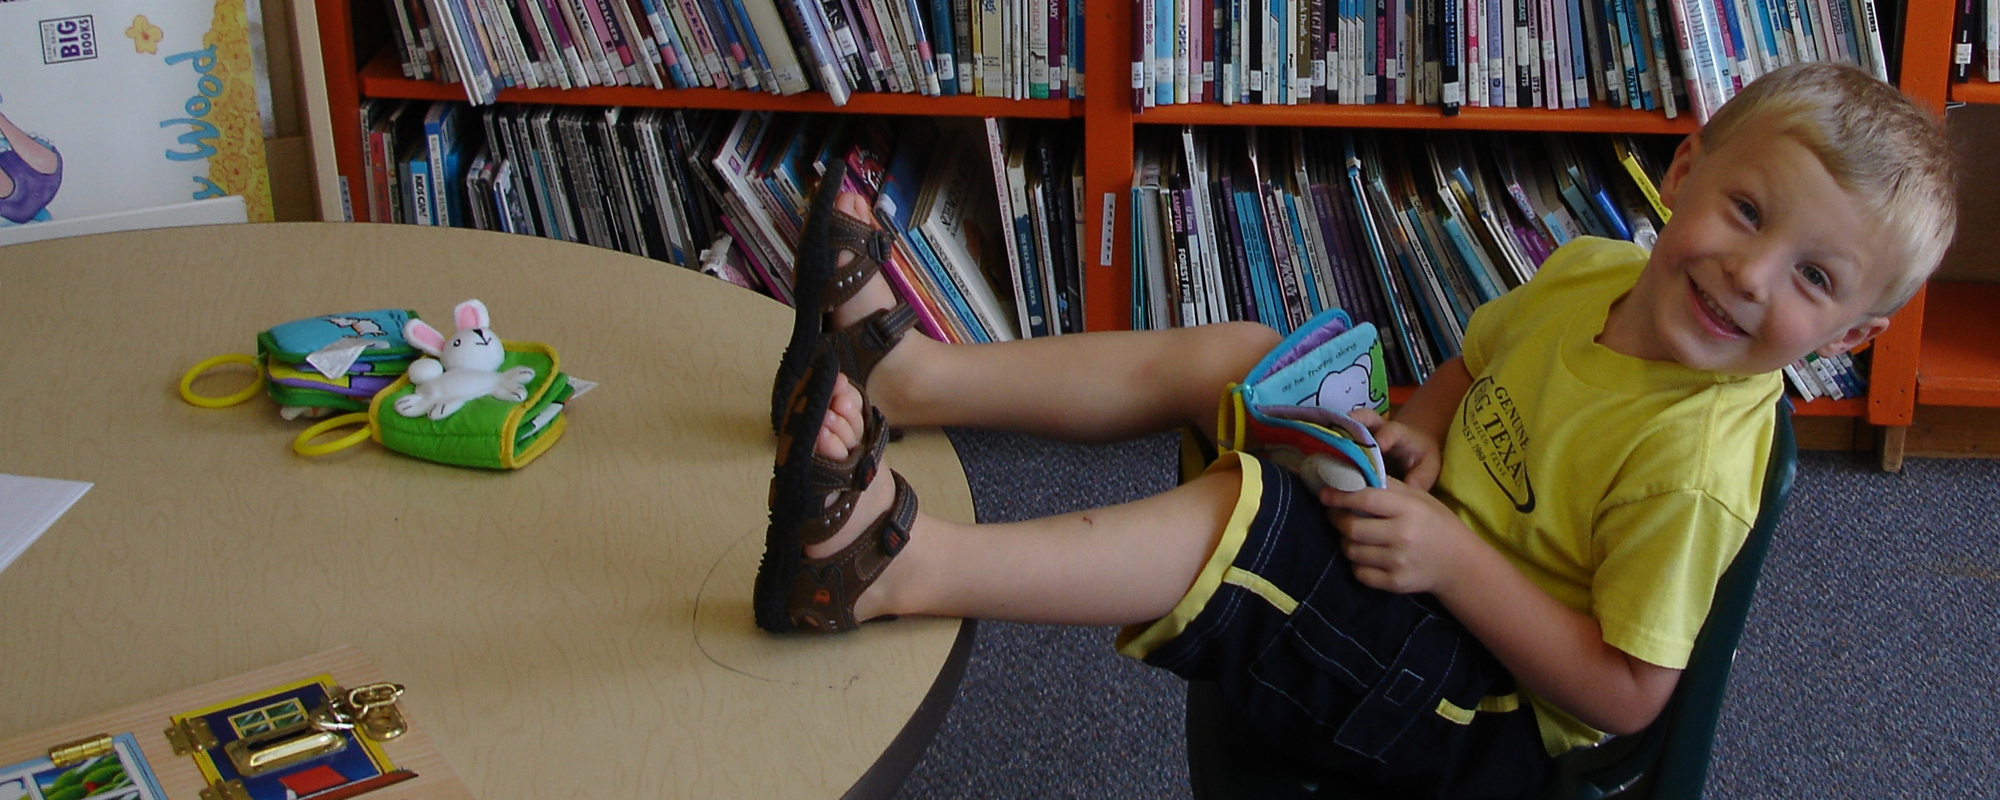 cute kid kickin back with a book